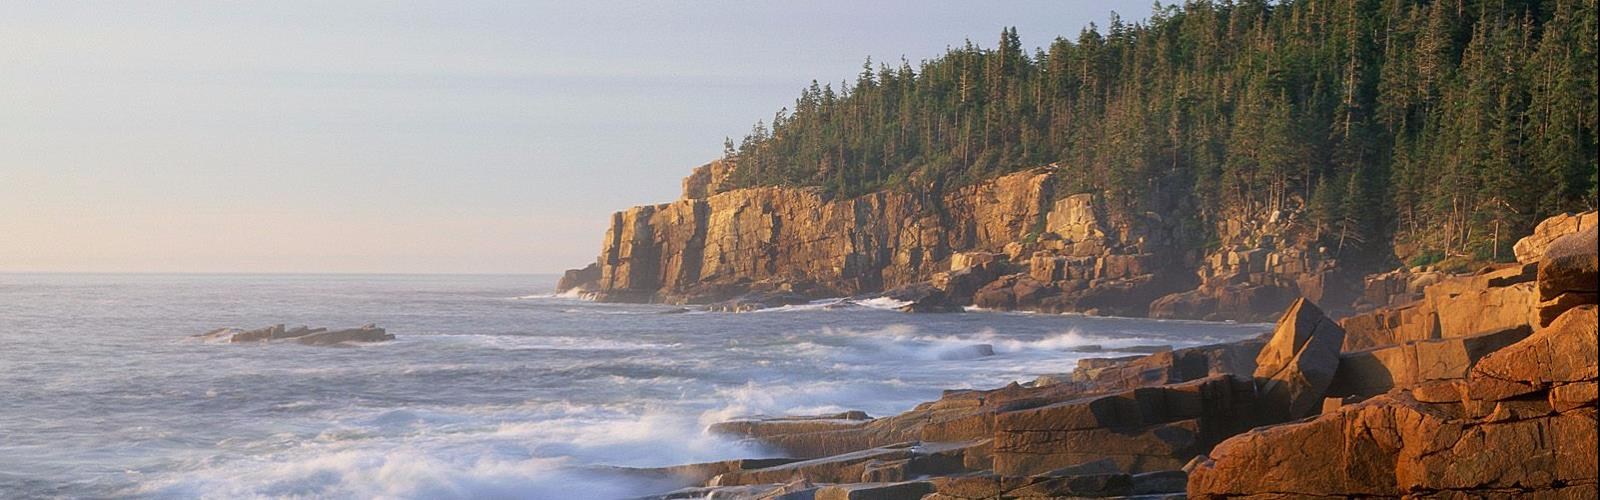 Acadia Mountain, Maine - Hiking  outdoor nature water rock landscape sky beach coast ocean mountain canyon